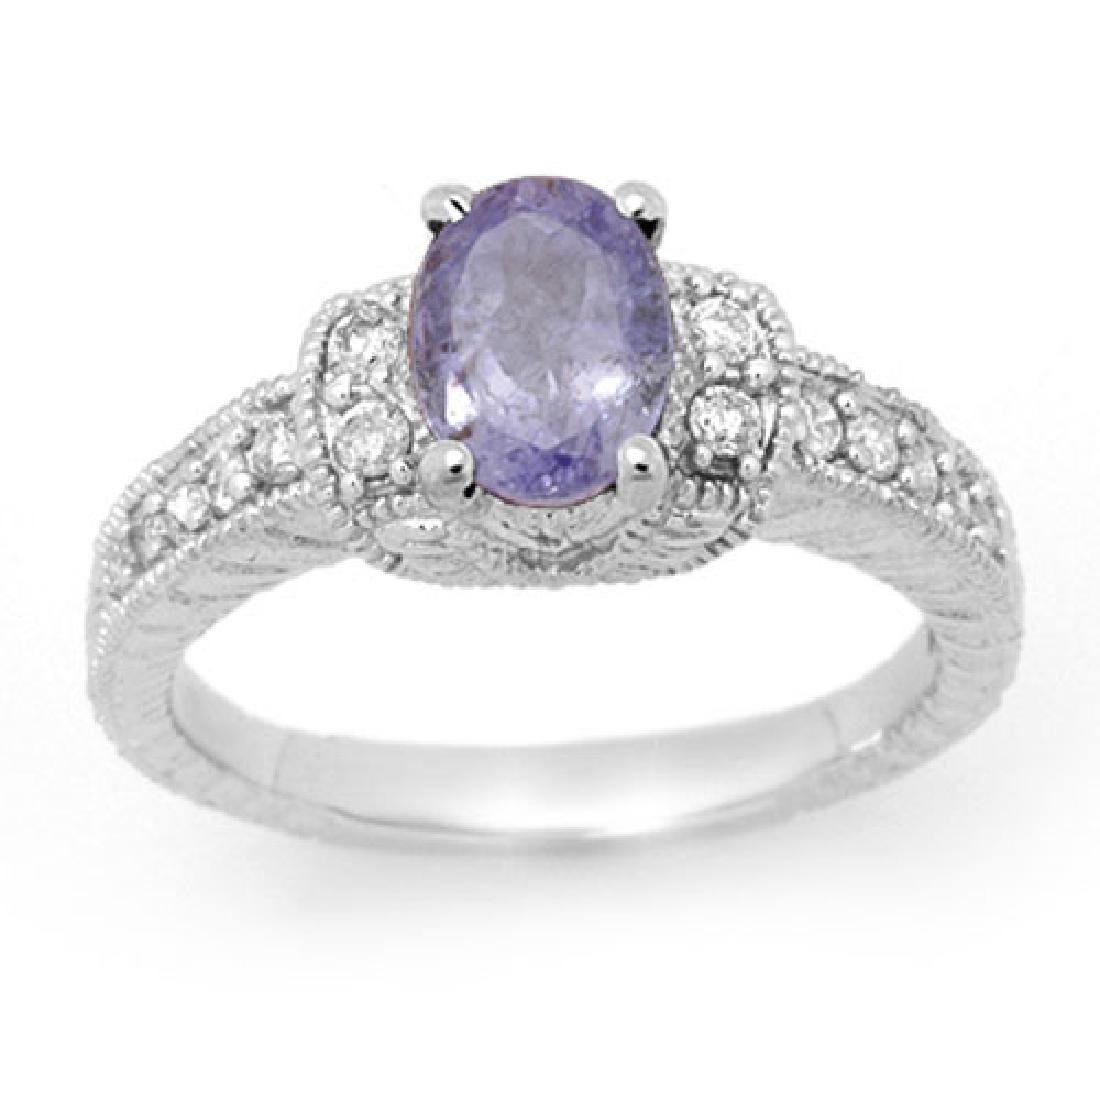 2.0 CTW Tanzanite & Diamond Ring 14K White Gold